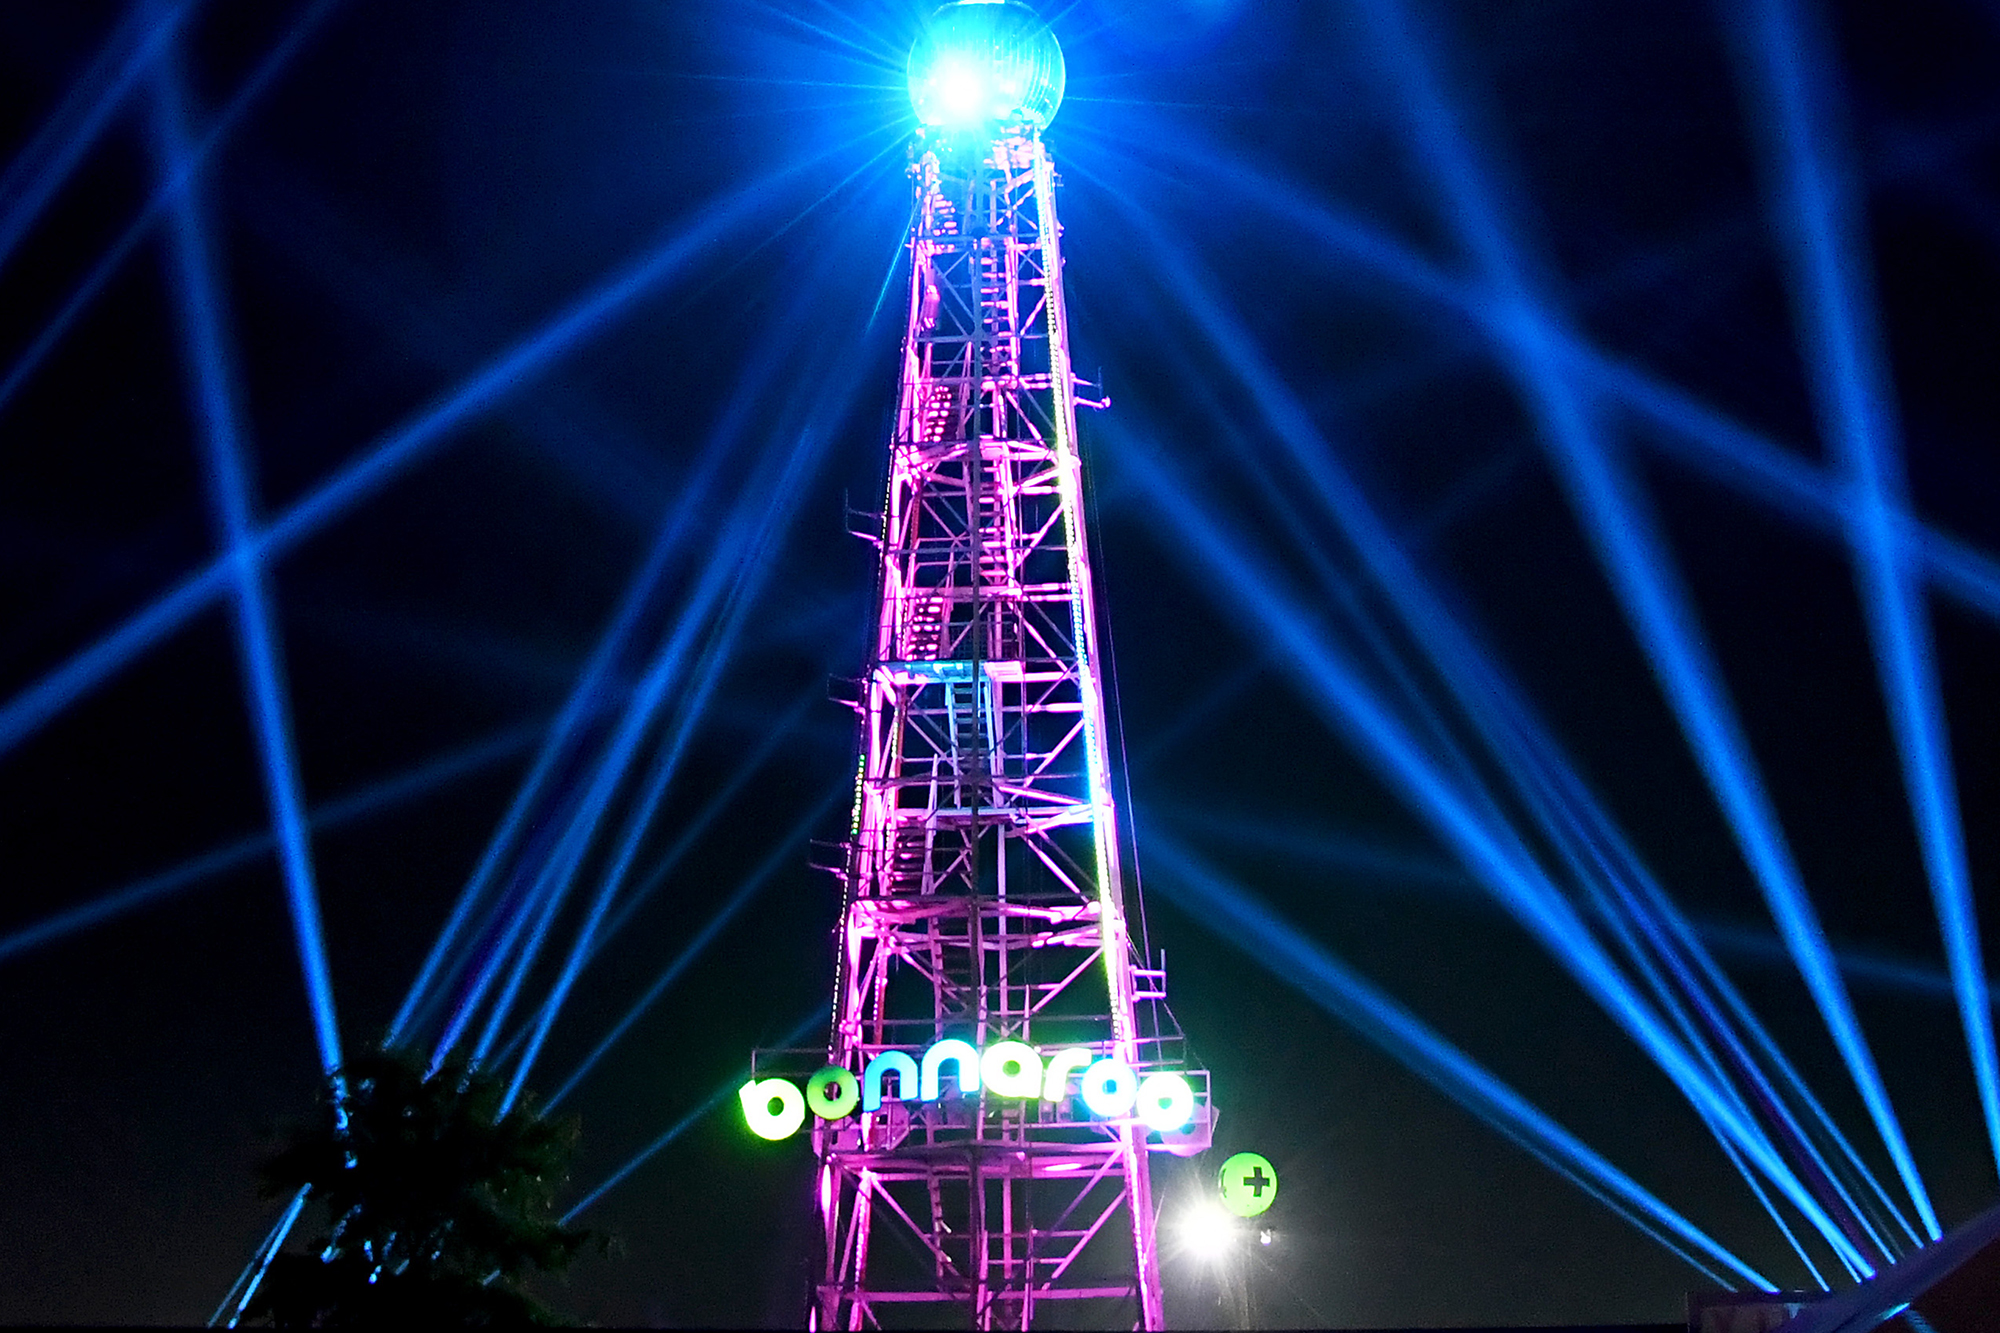 Bonnaroo tower is seen during the 2019 Bonnaroo Arts And Music Festival on June 13, 2019